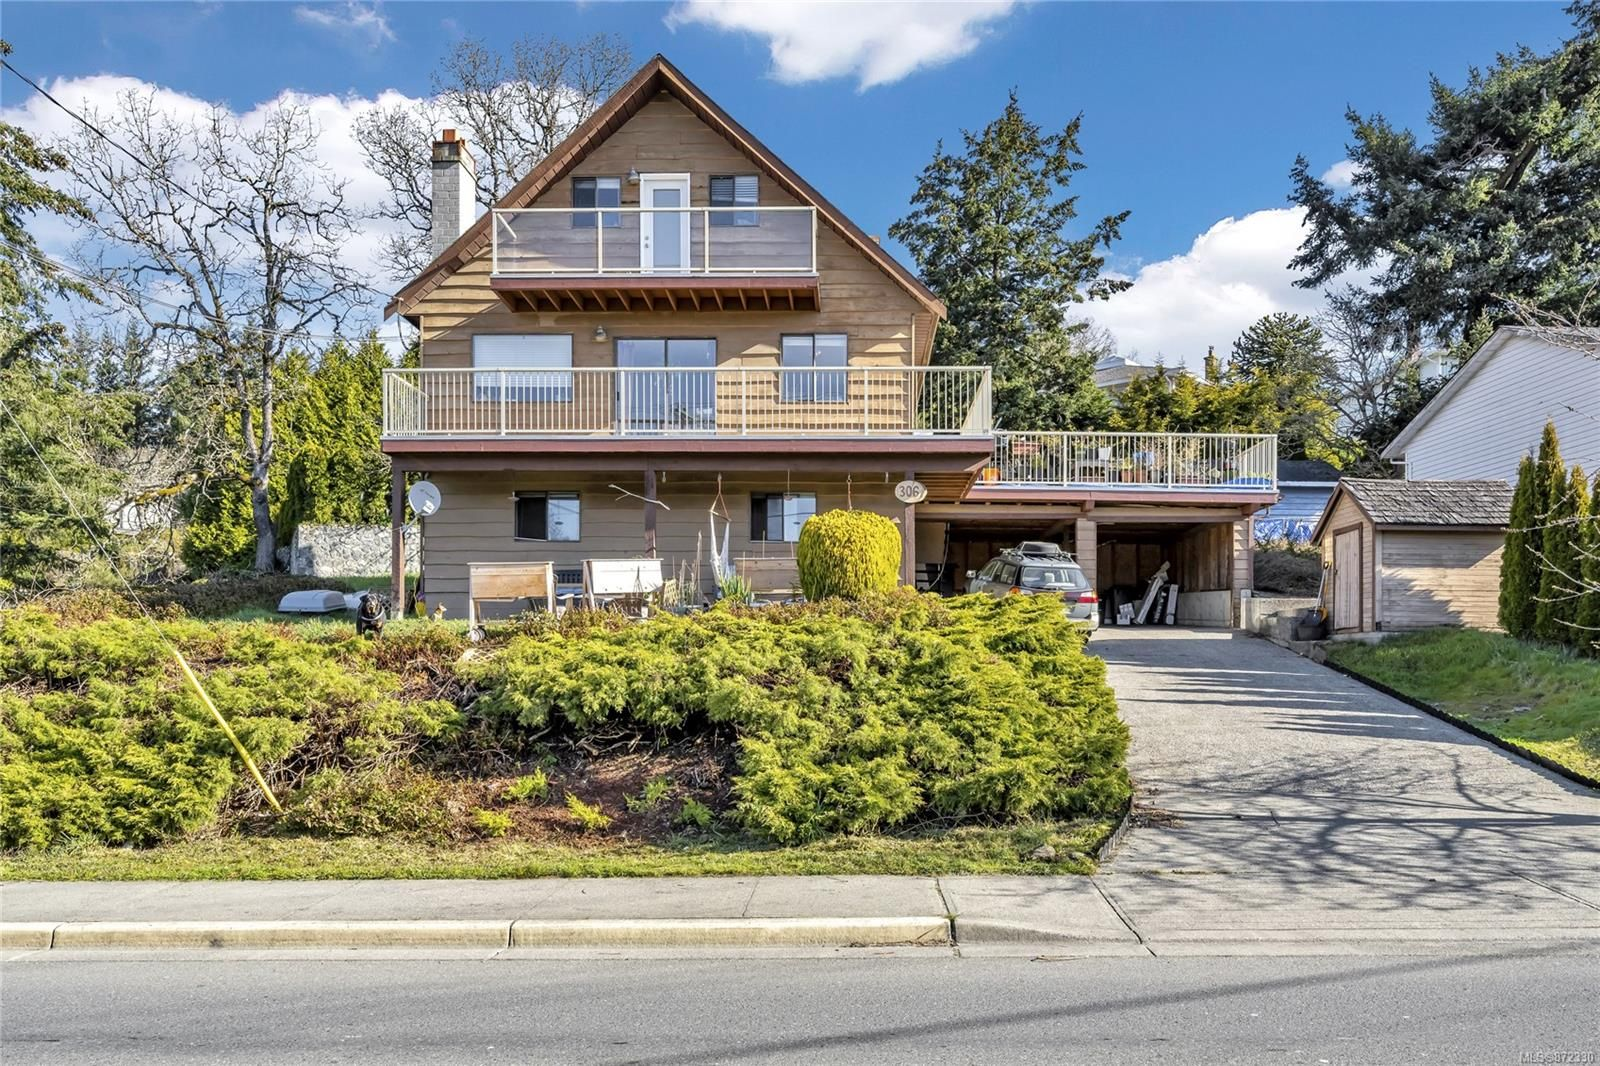 Main Photo: 306 Six Mile Rd in : VR Six Mile House for sale (View Royal)  : MLS®# 872330